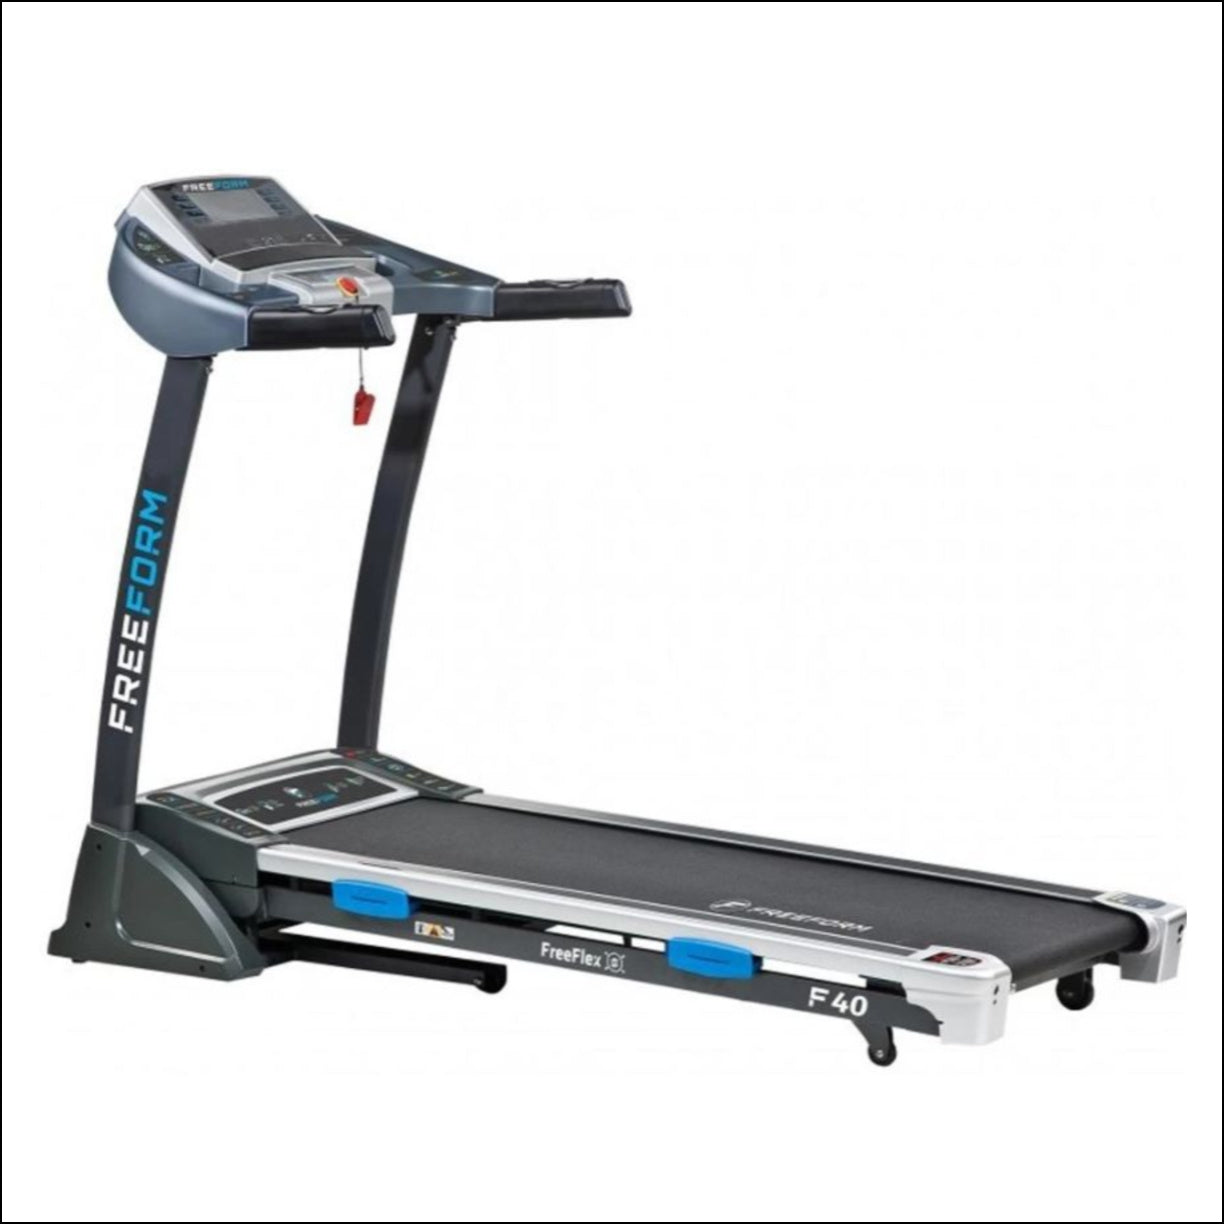 Make home workouts more convenient with the help of Freeform F40 Treadmill. Quickly and easily select any speed from 1km/hr to a 16km/hr with a single button press on the OneTouch Quick Speed Controls powered by the HiTorque 2.25 Continuous Horse Power Commercial Motor. Other features include FreeFlex precision cushioning for ultimate comfort and simple foldaway design.